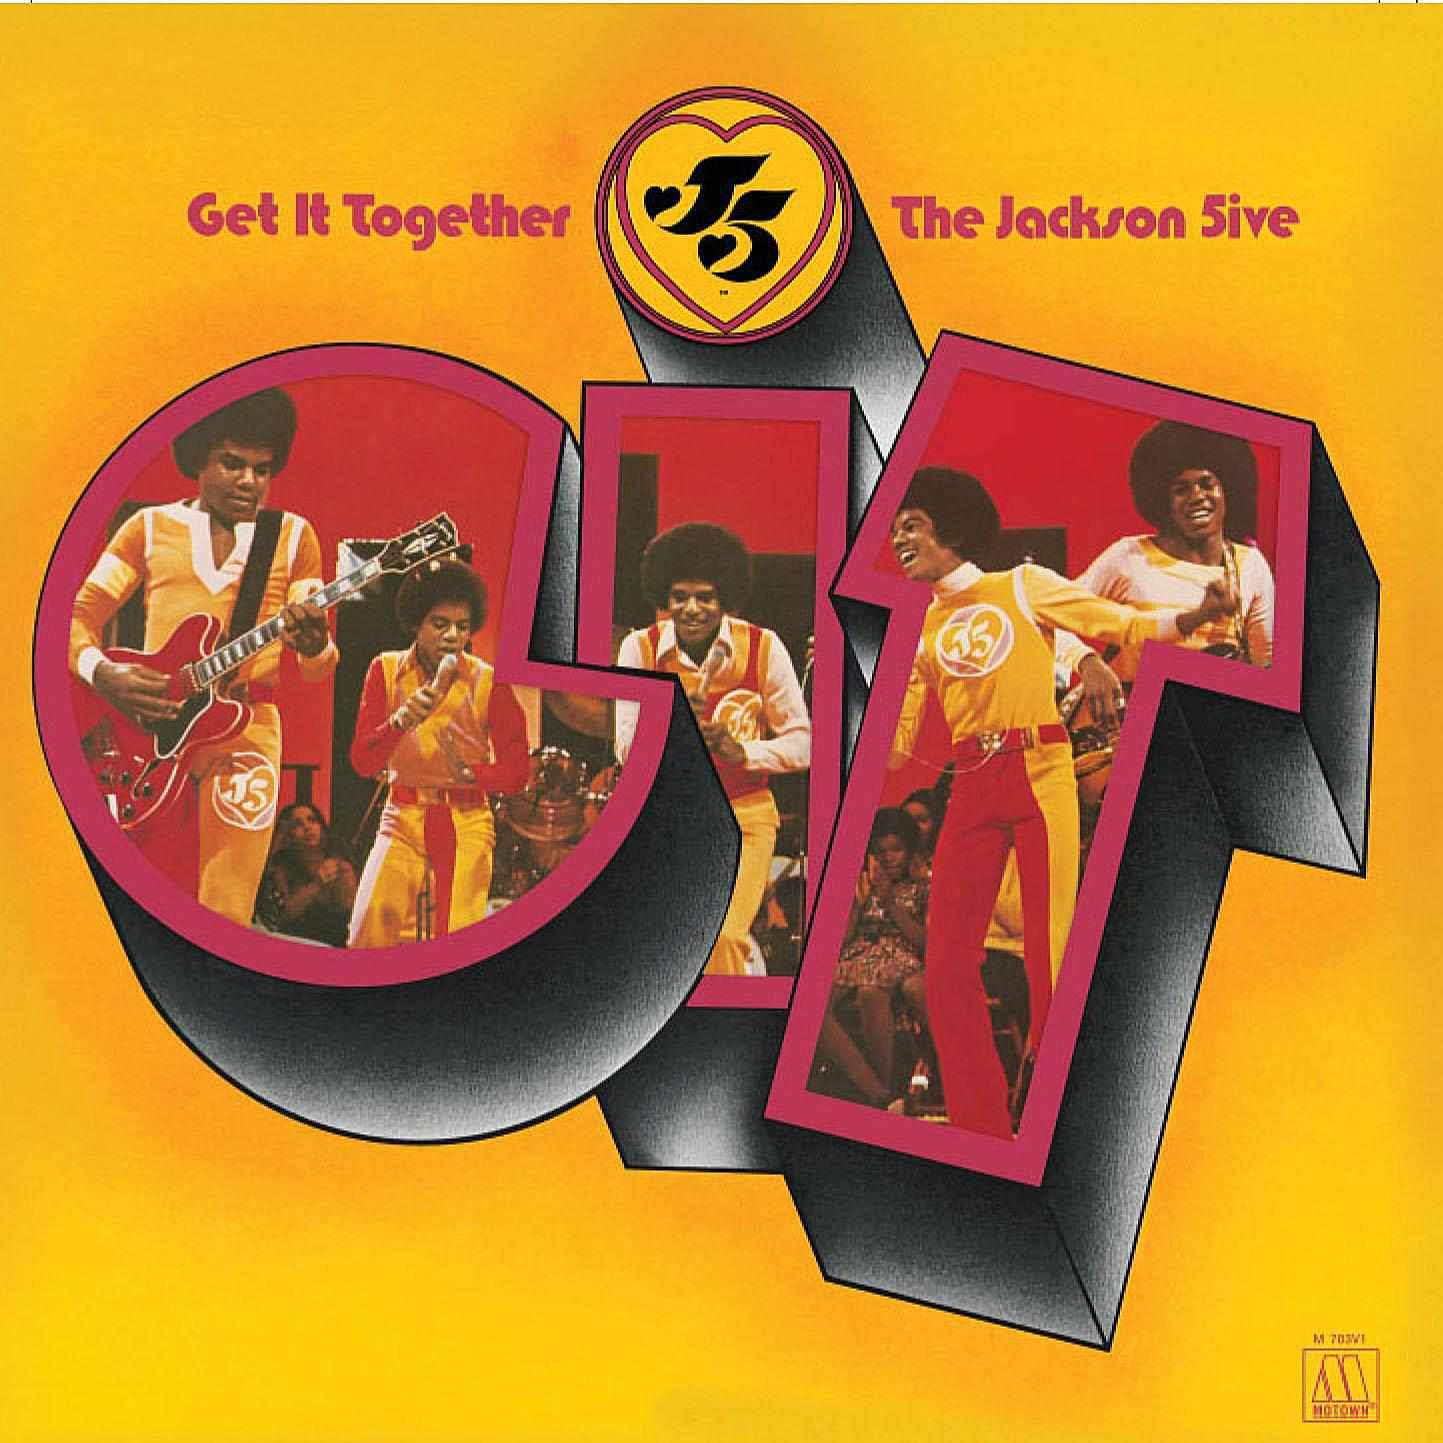 G.I.T.: Get It Together was the tenth studio album by The Jackson 5.